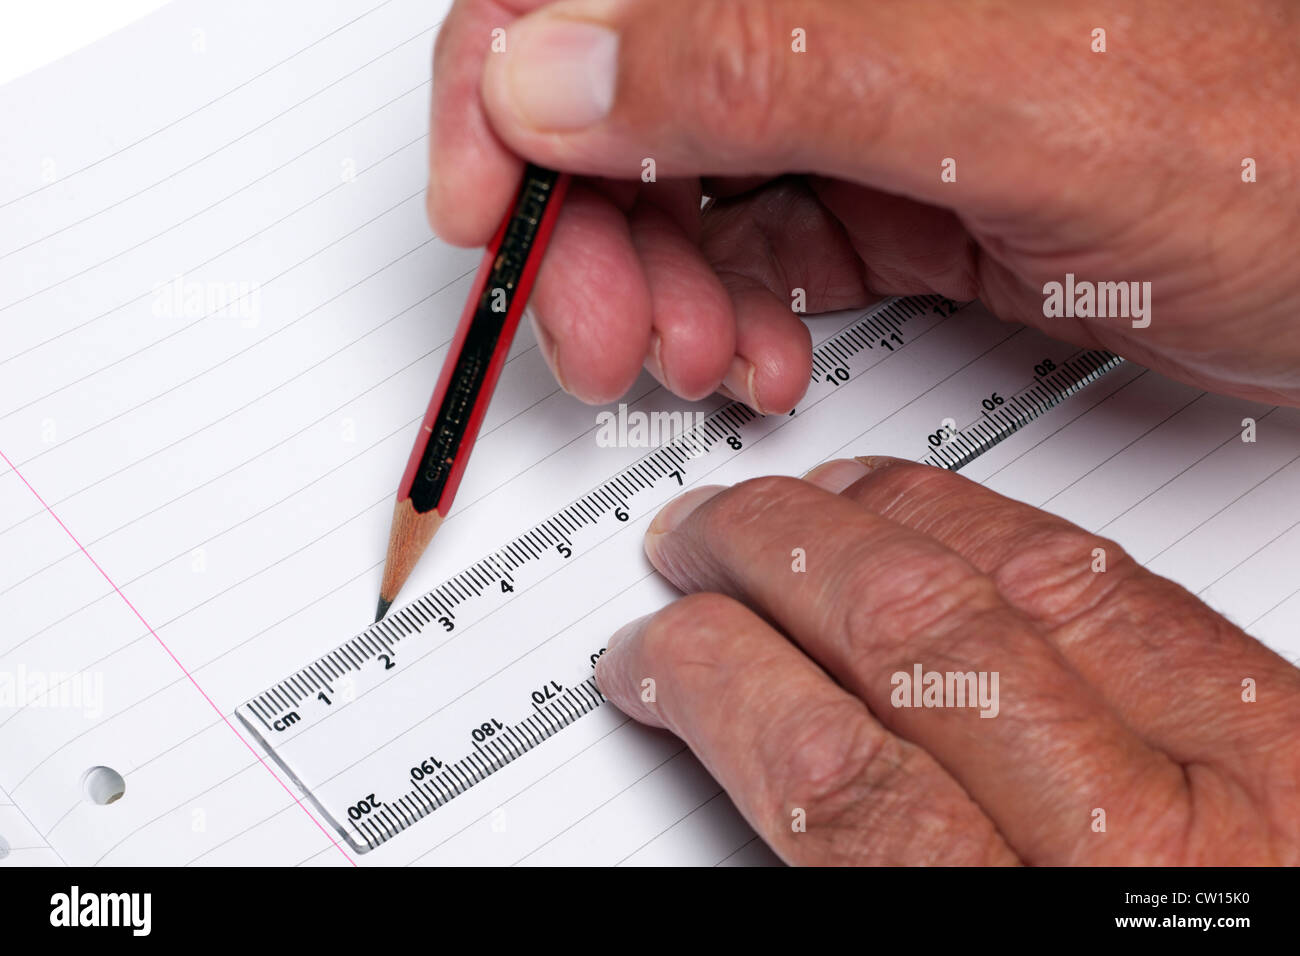 Measuring with a rule - Stock Image